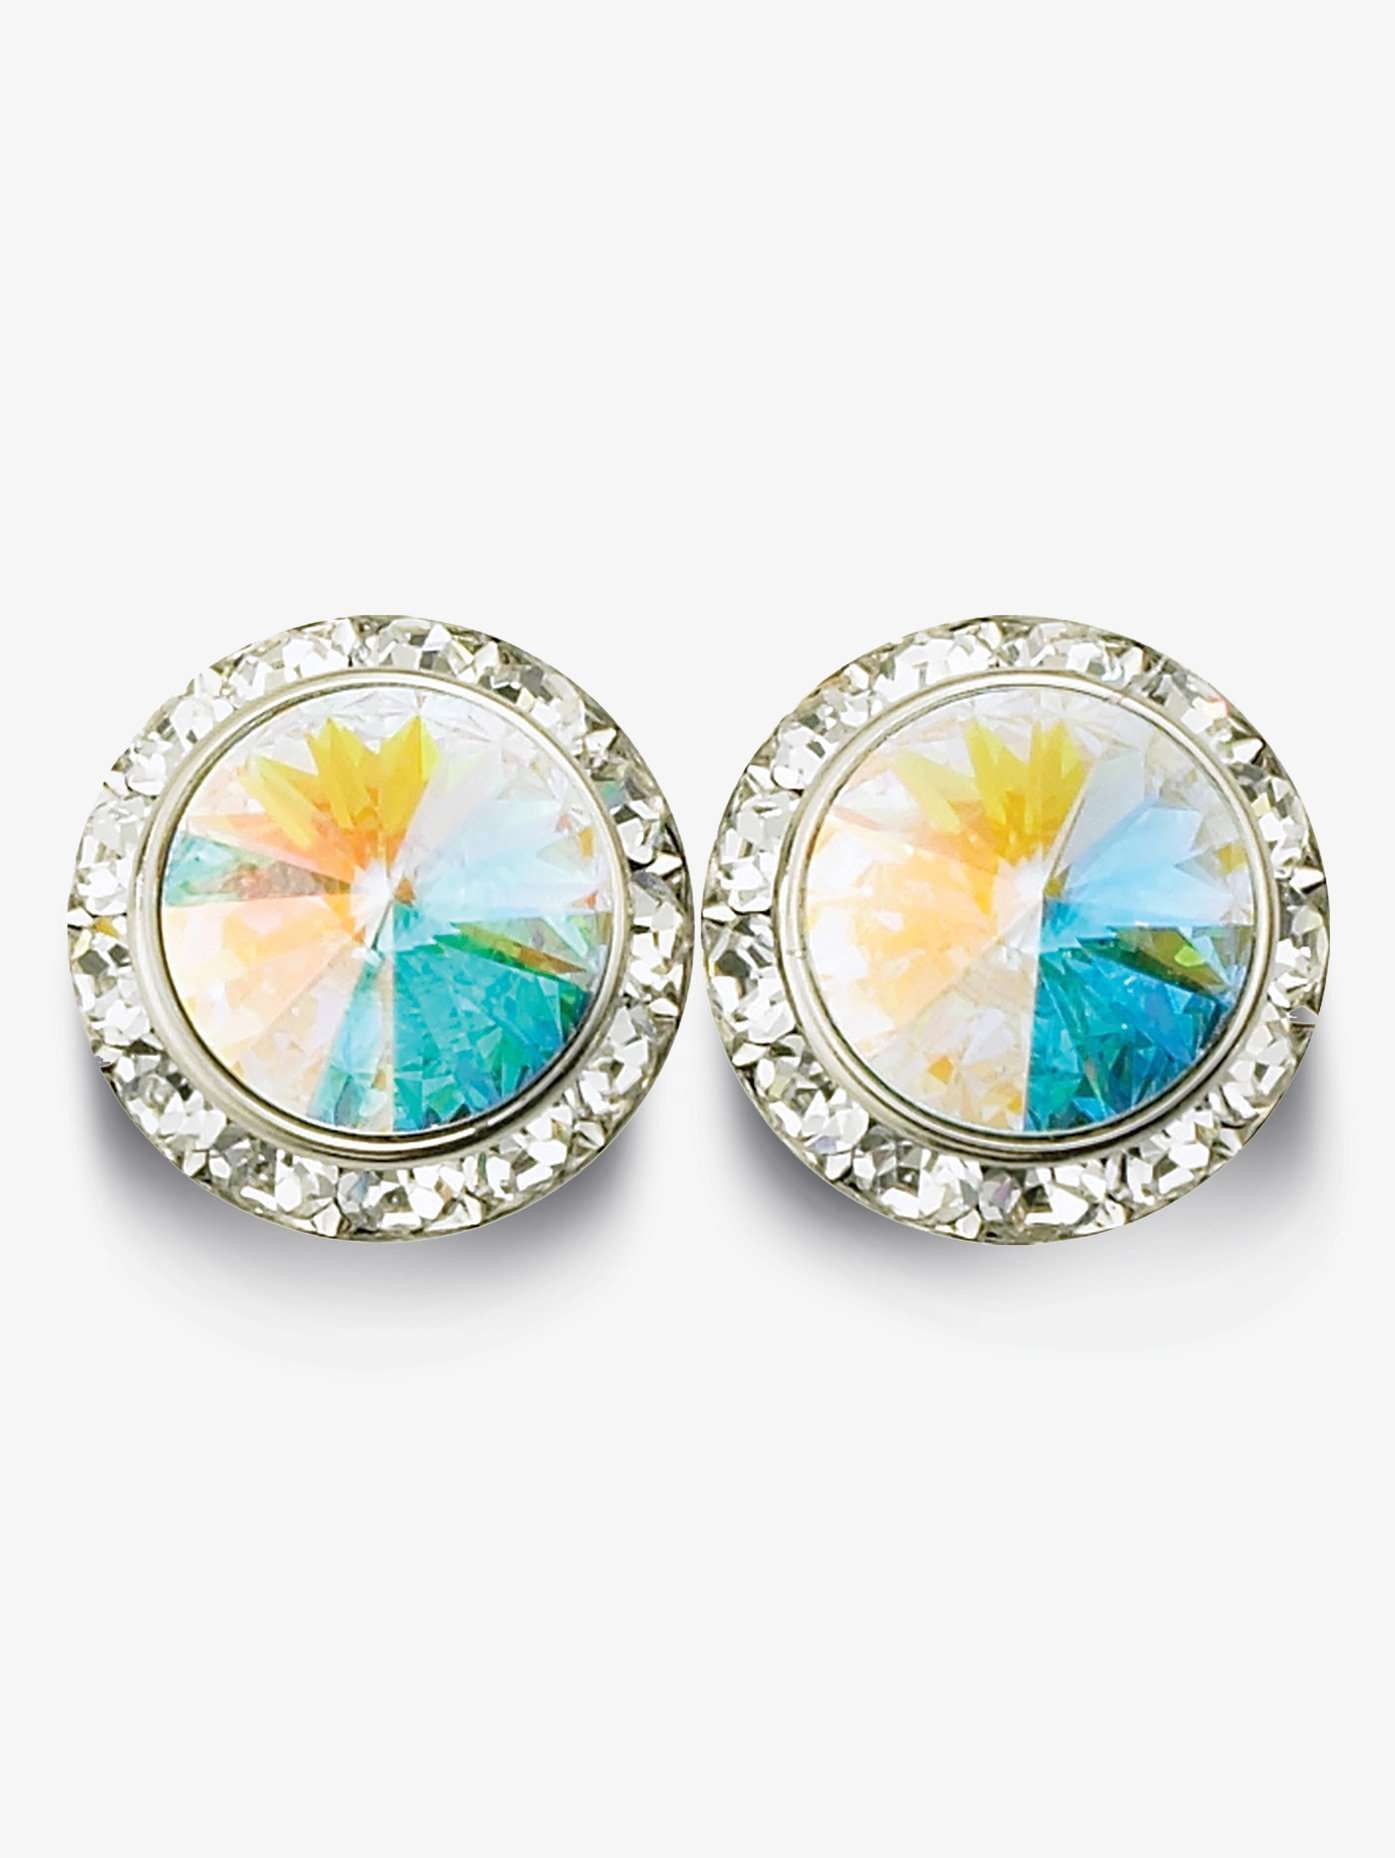 15mm Clip On Earrings With Swarovski Crystals